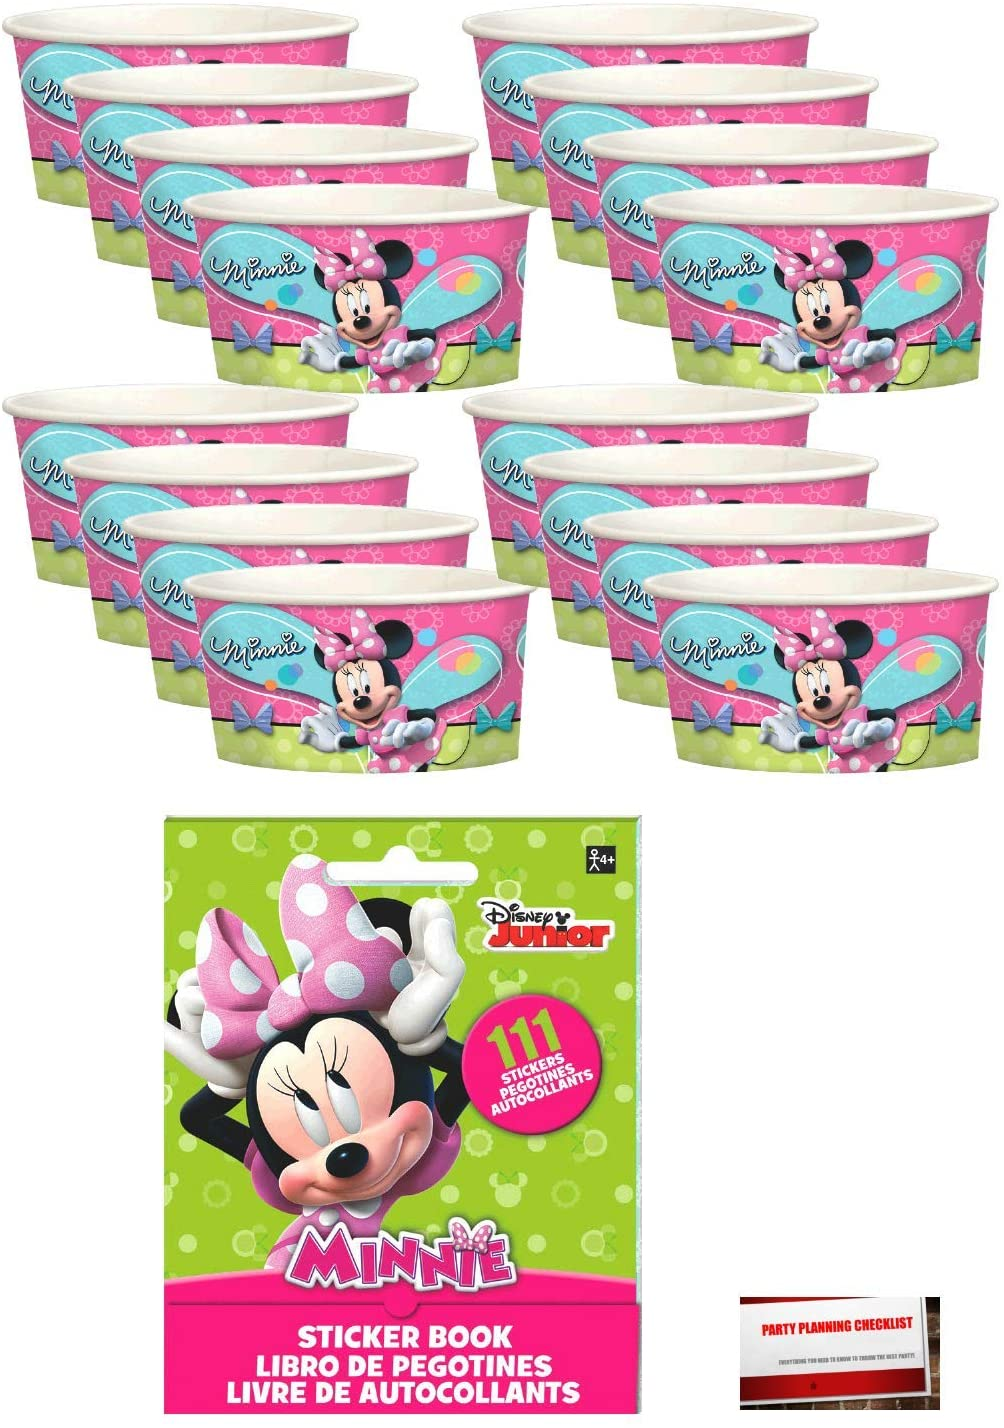 Minnie Mouse Party Decorate Your Own Favor Cups 16 Pack Includes 111 Pc Sticker Book (Plus Party Planning Checklist by Mikes Super Store)